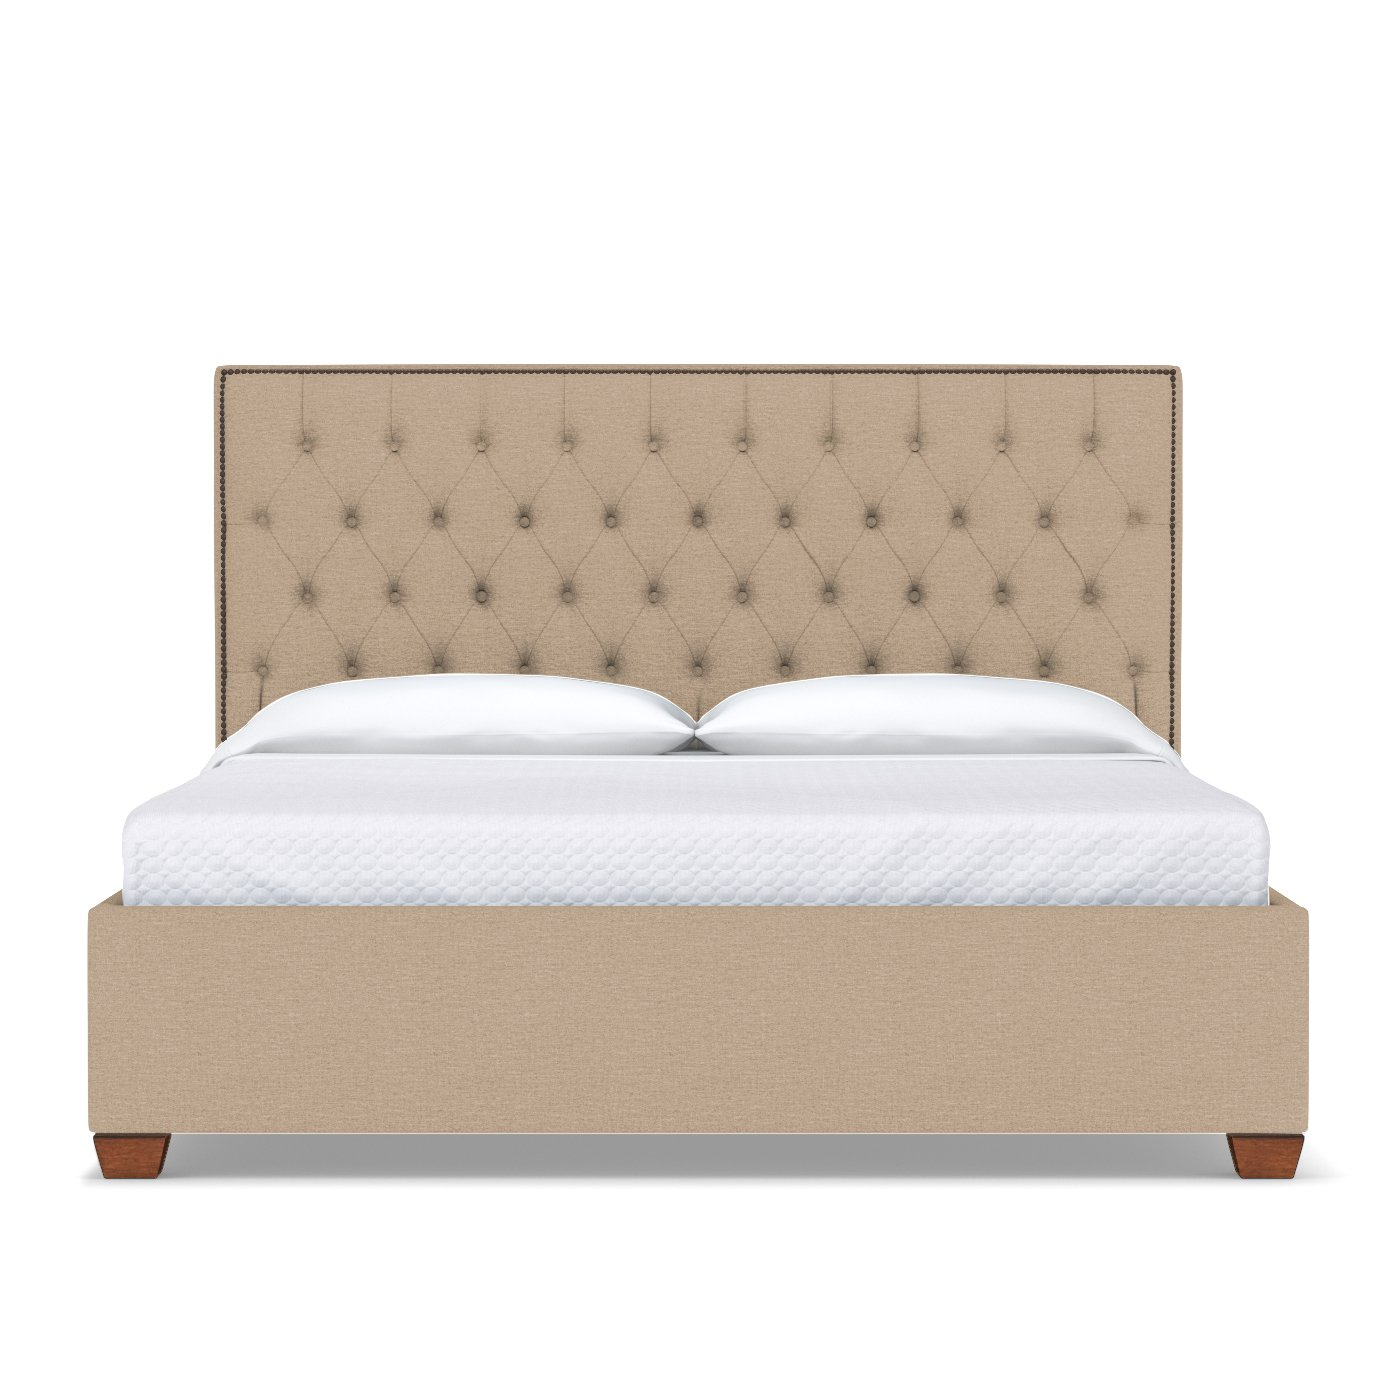 Huntley Drive Upholstered Bed - Choice of Fabrics - Apt2B